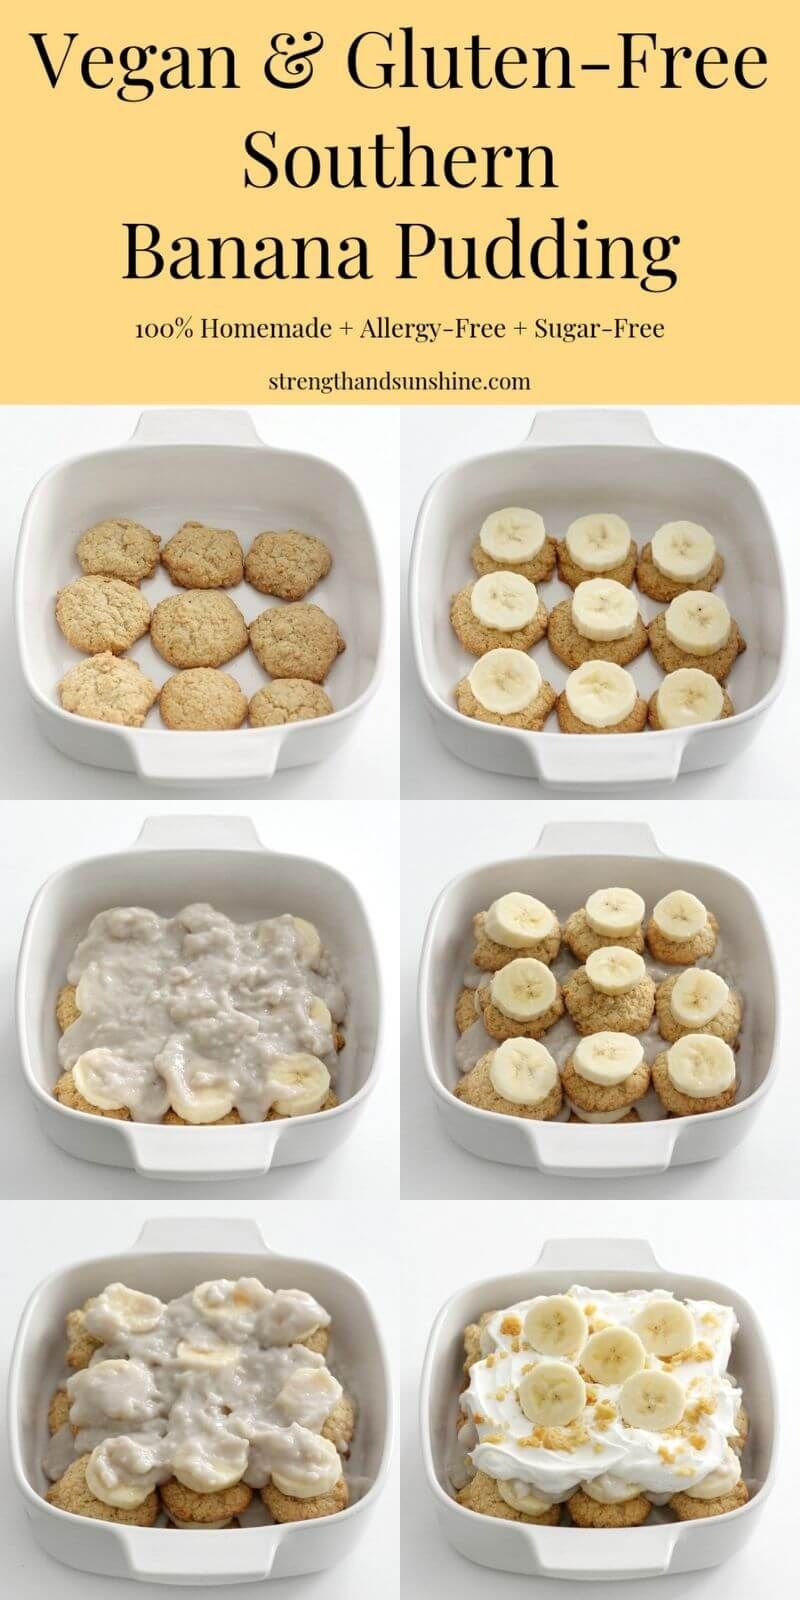 Southern Vegan Banana Pudding Gluten Free Allergy Free